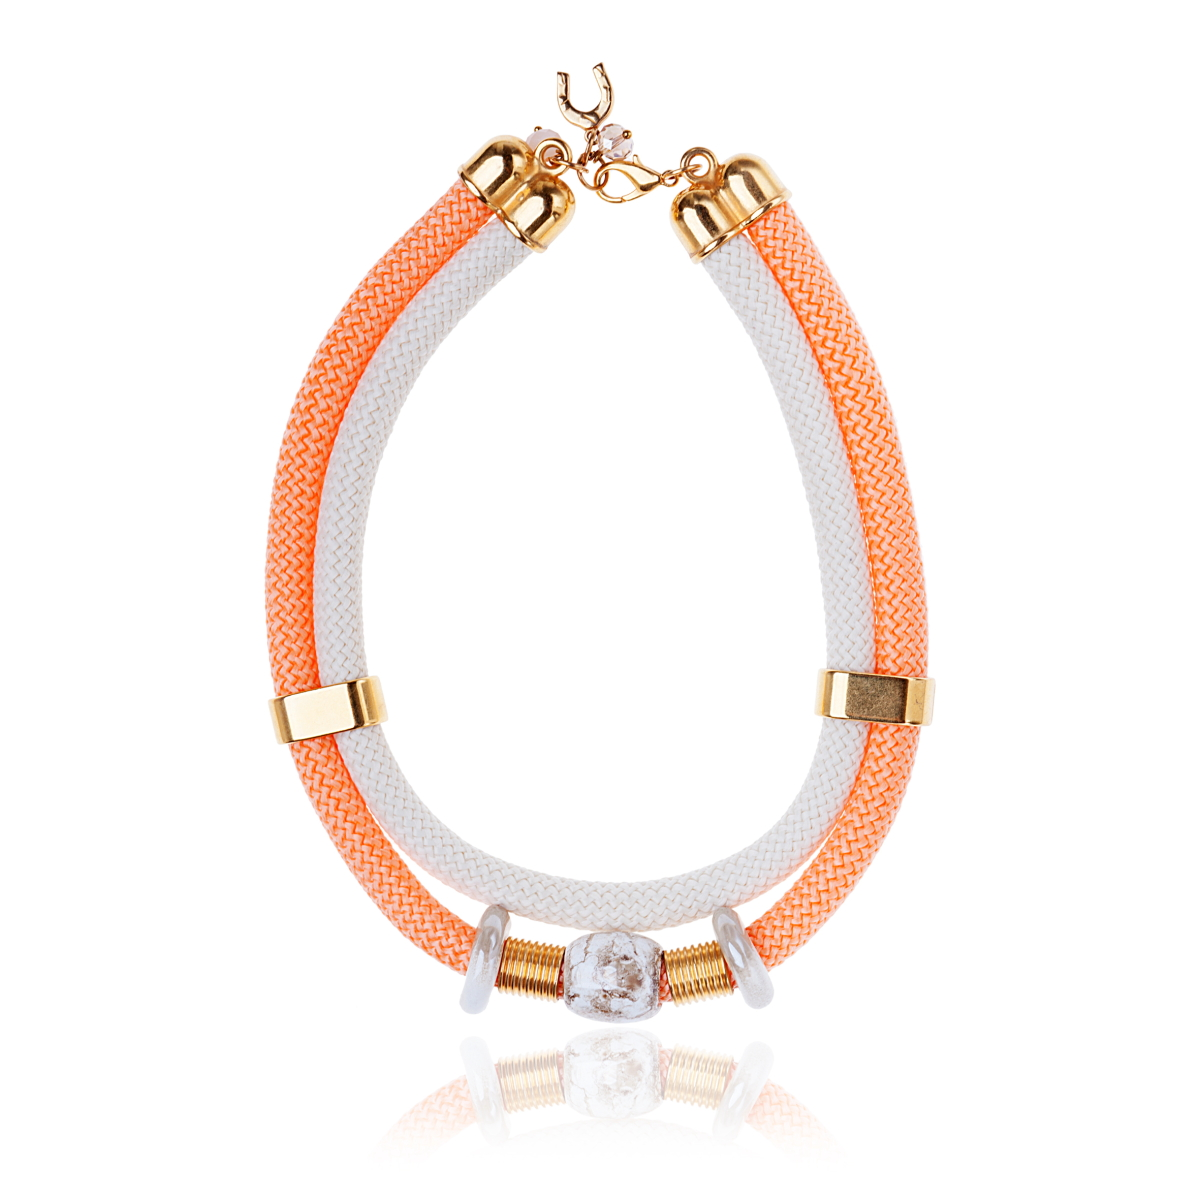 IRIS: Make a statement necklace / White & Orange | Accessories,Jewelry > Necklaces,Jewelry -  Hiphunters Shop